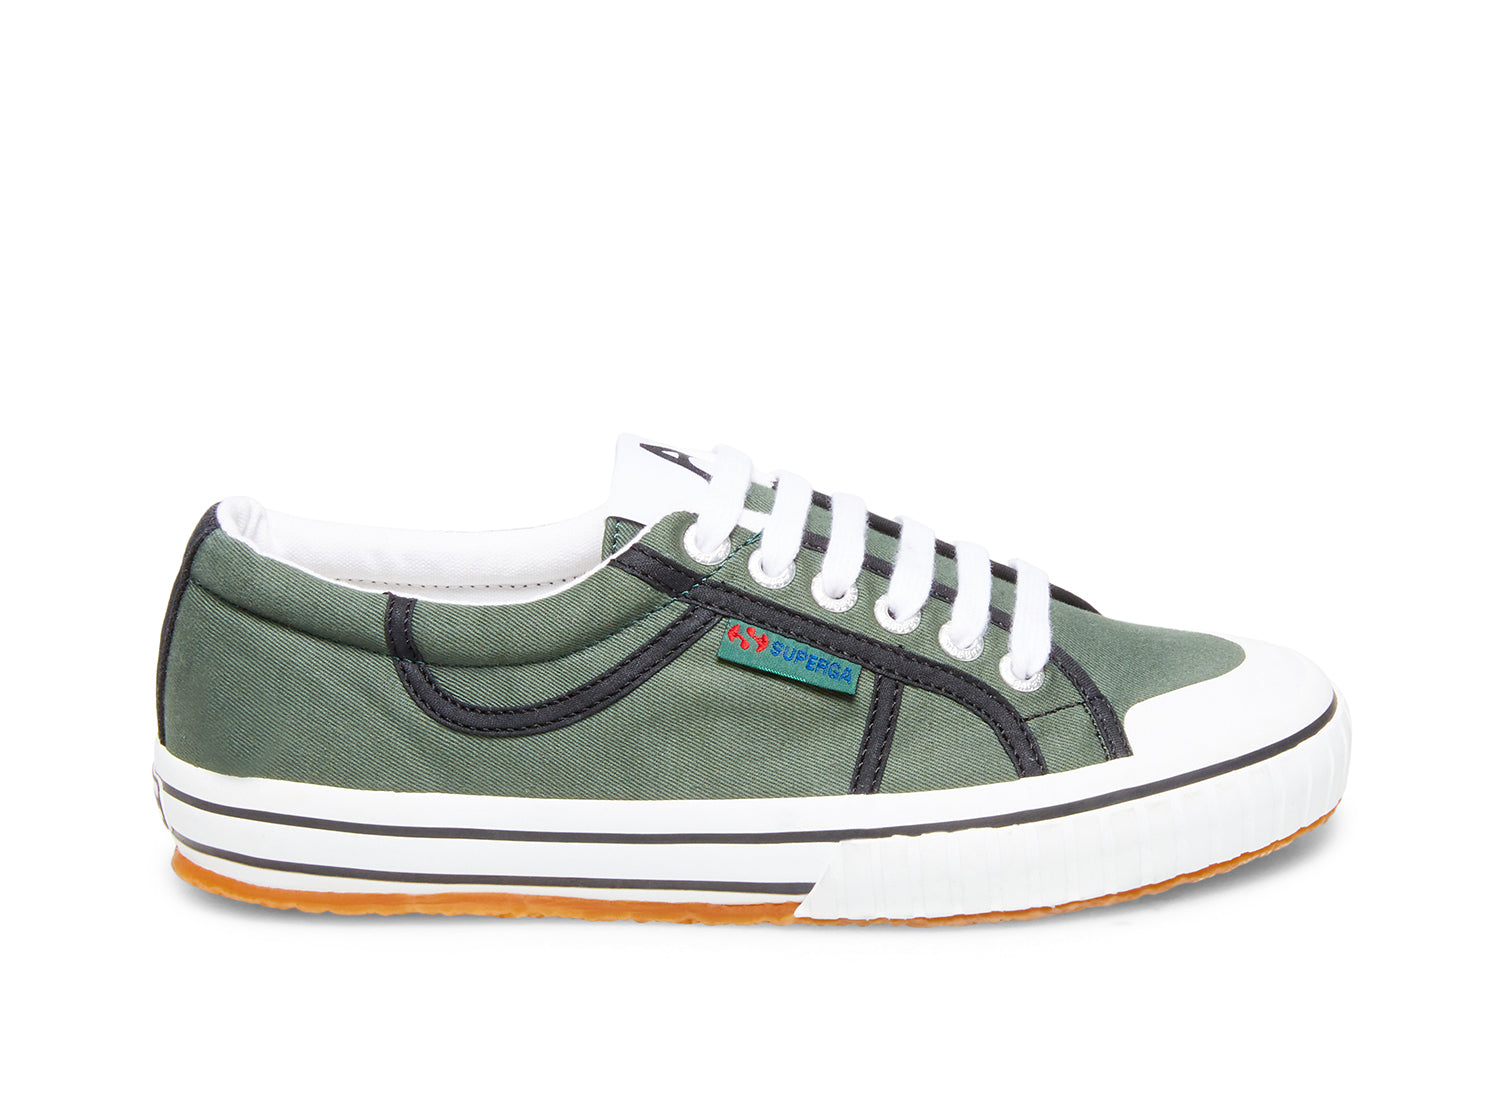 Superga 2506 cotw green moss side